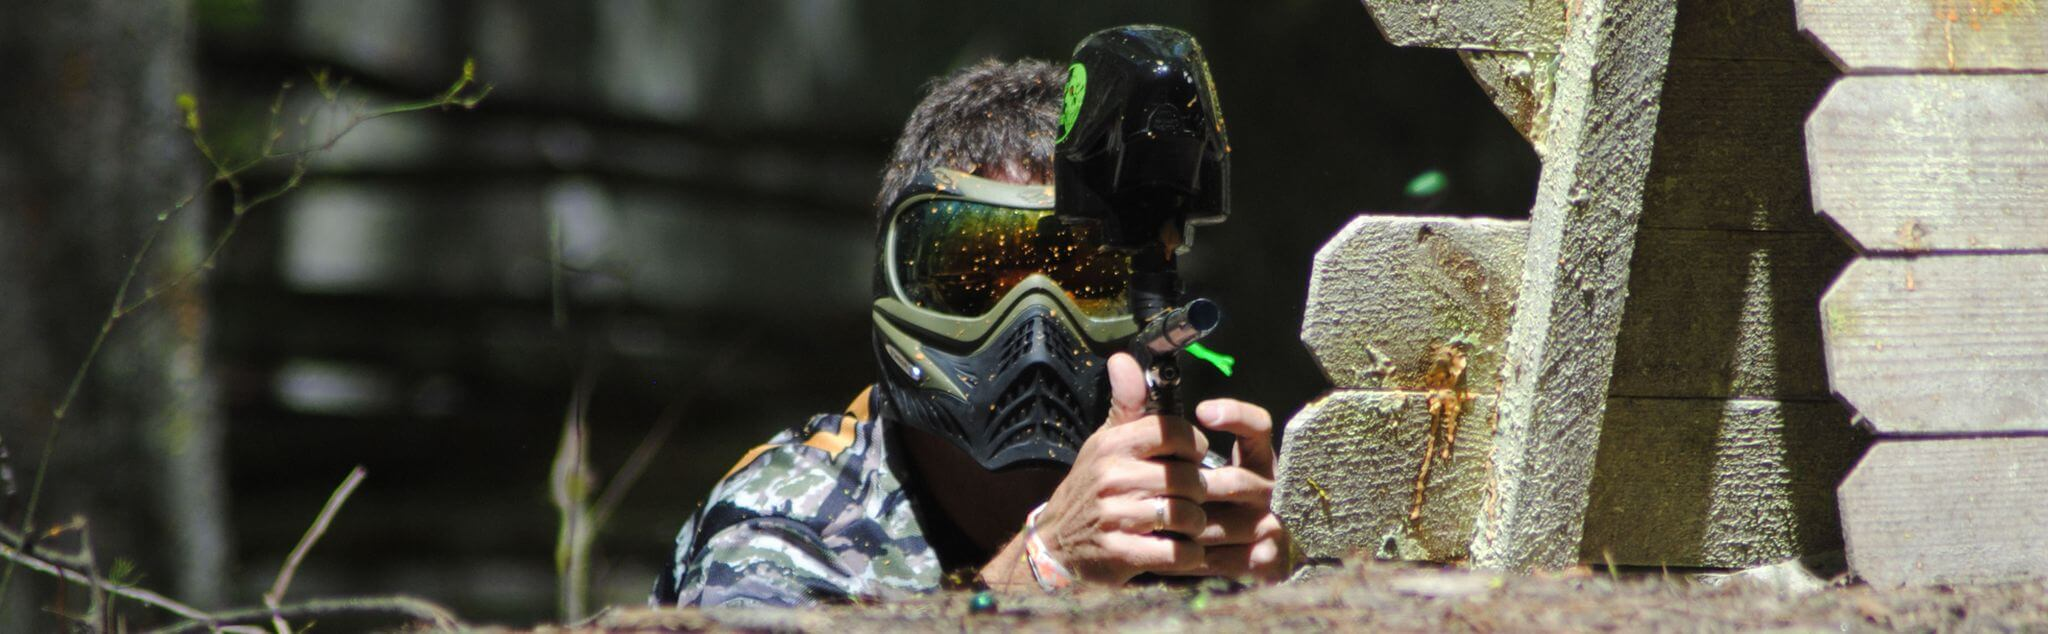 Paintball a Chieti